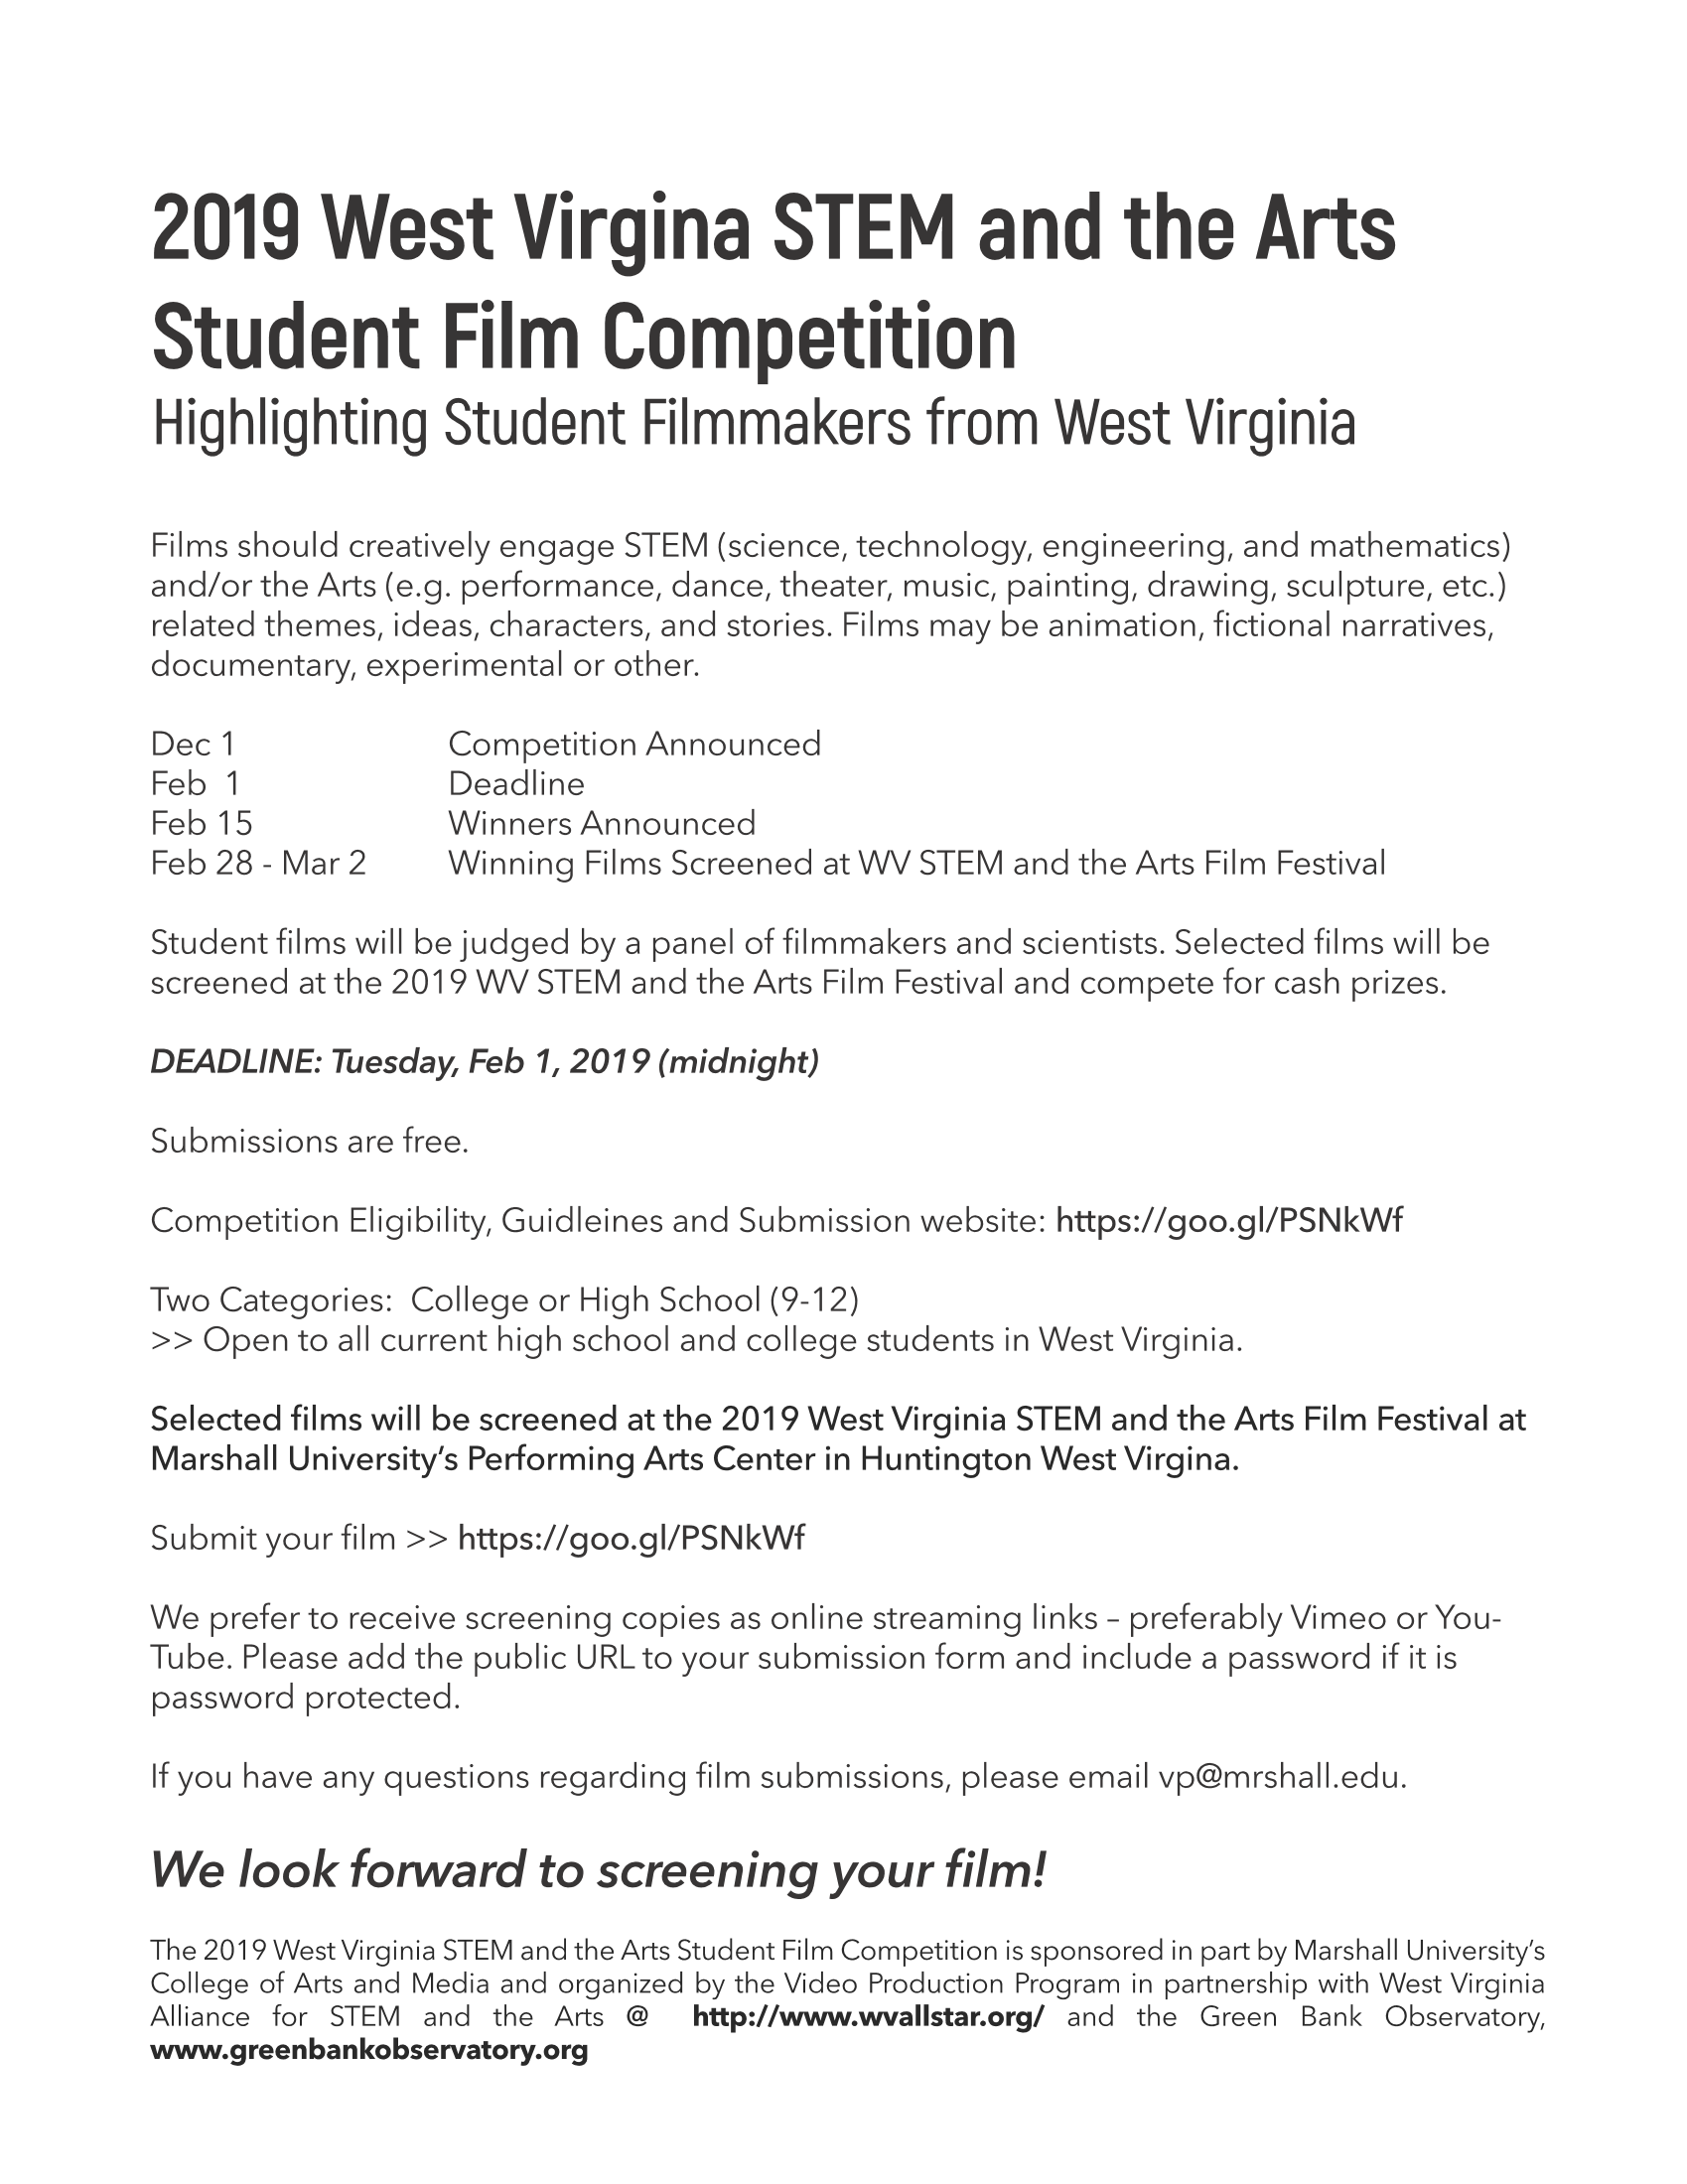 The 2019 WV STEM & the Arts Student Film Competition —— Now Open for